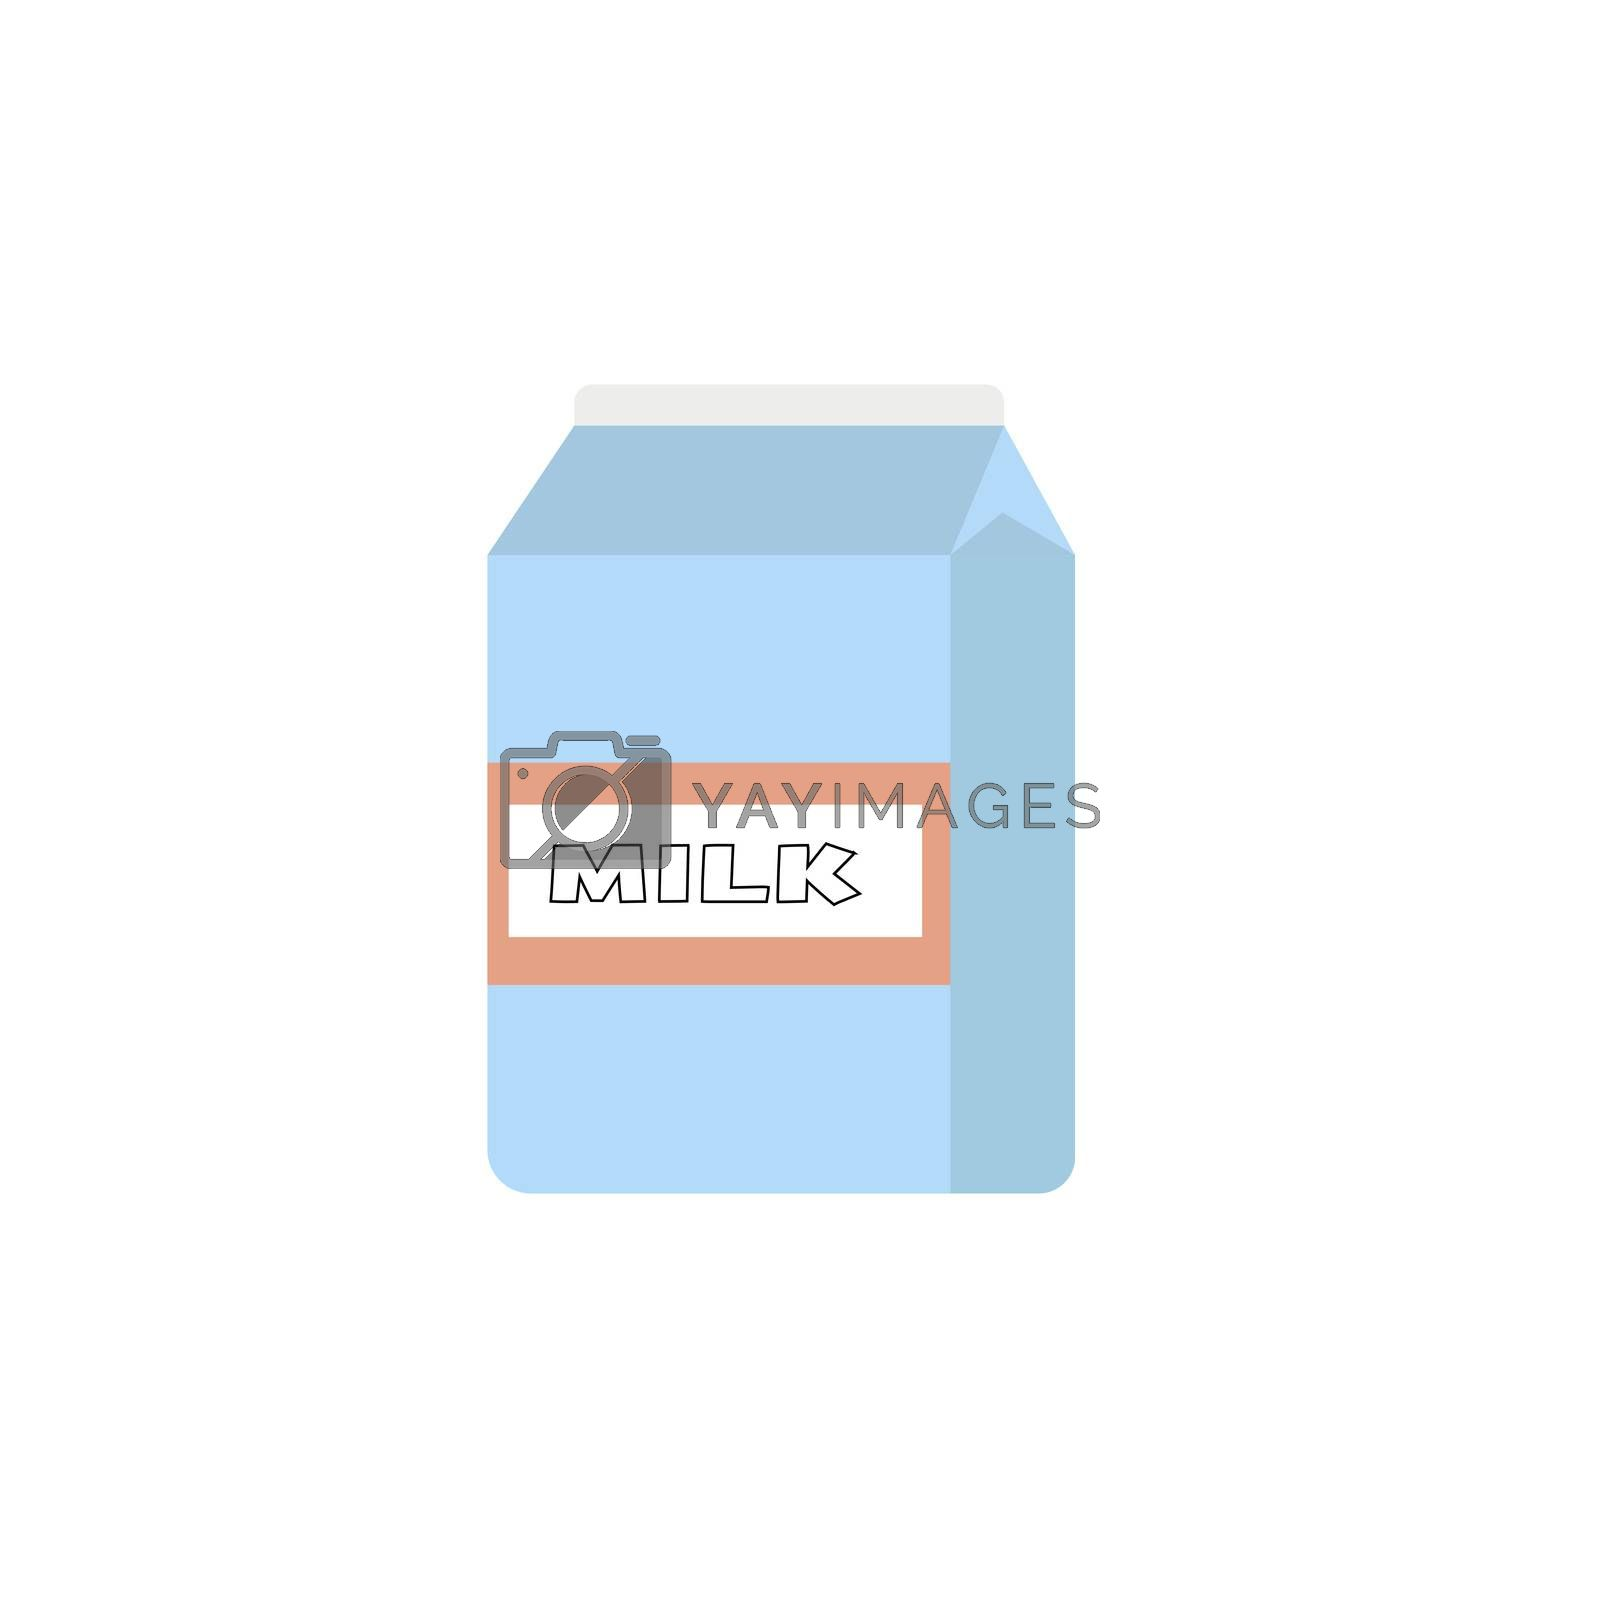 paper packet with milk isolated on white. illustration in flat style.